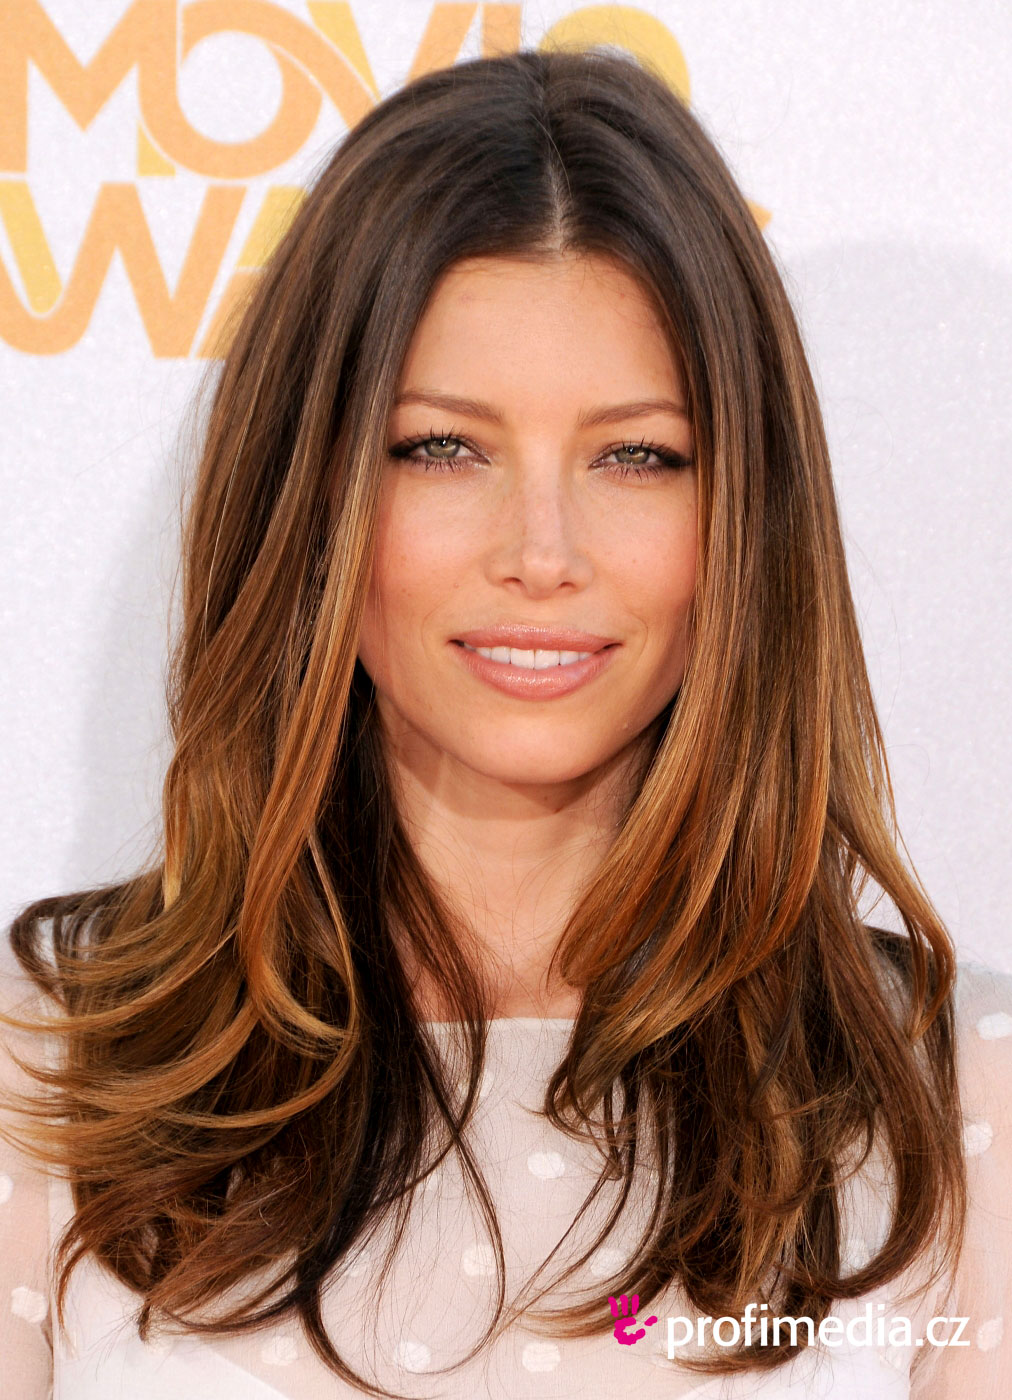 Jessica biel coiffure happyhair for Miroir virtuel coiffure